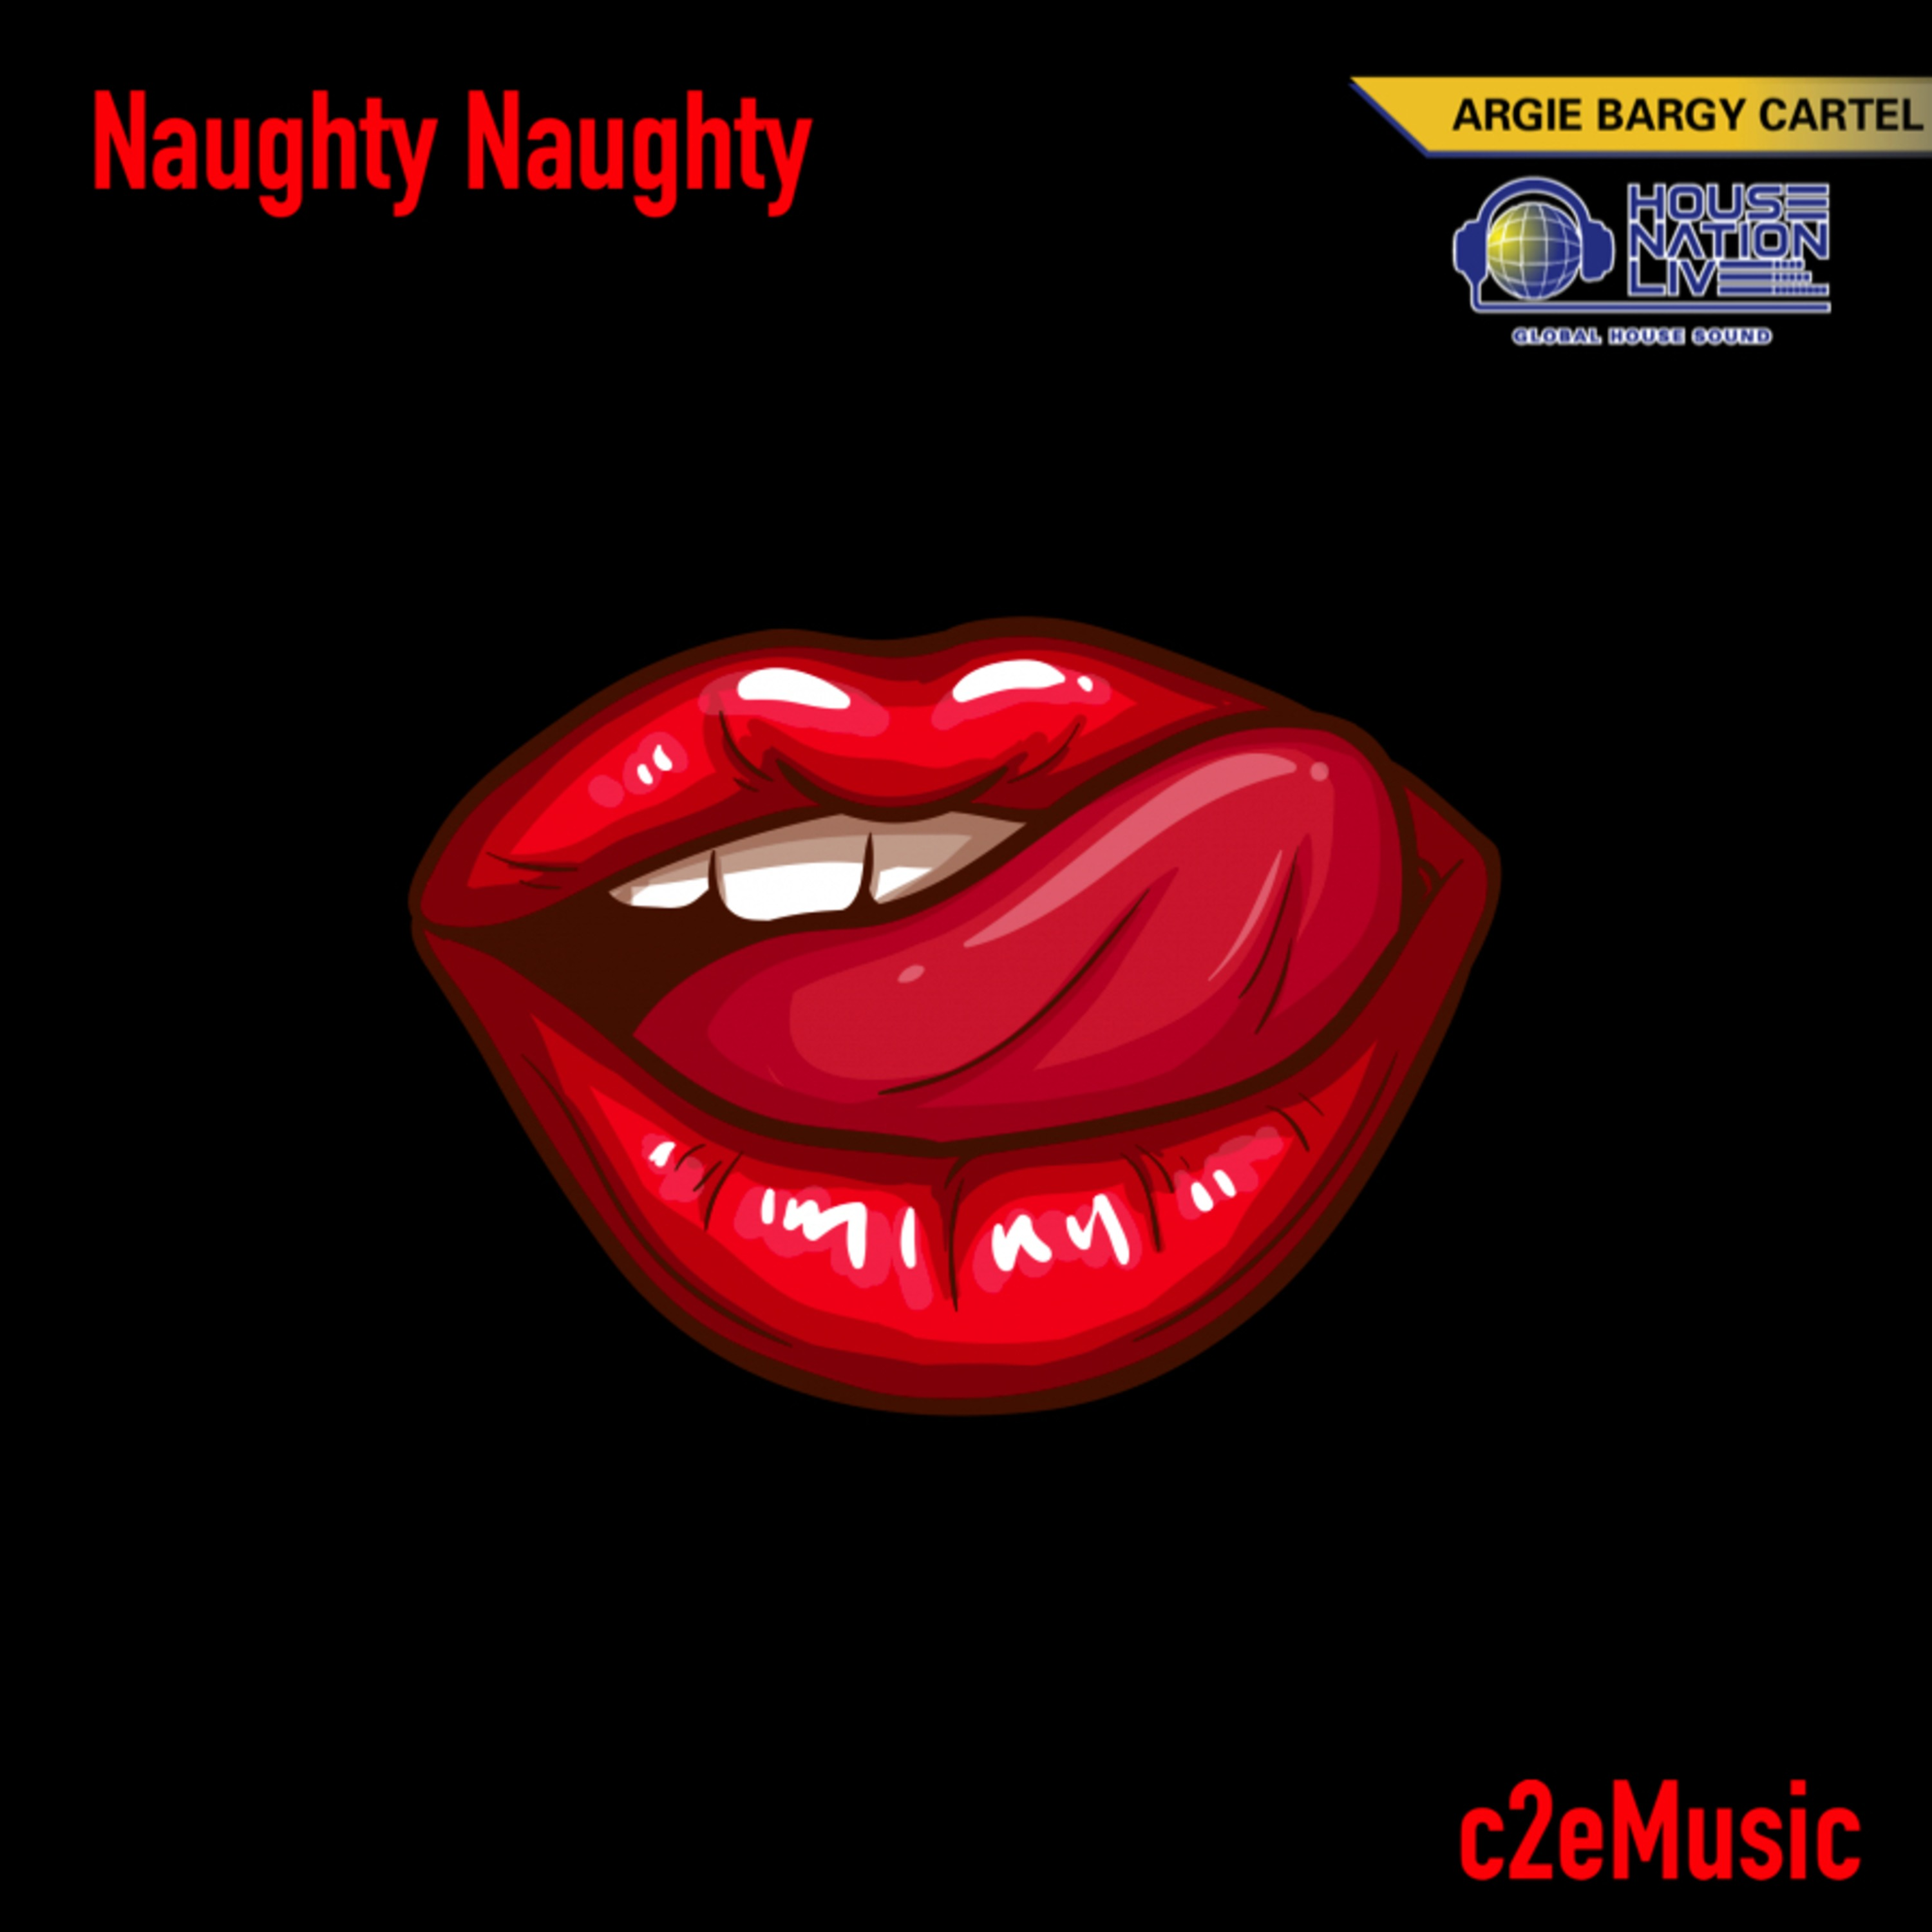 c2eMusic - Argie Bargy Cartel - HNL - Naughty Naughty